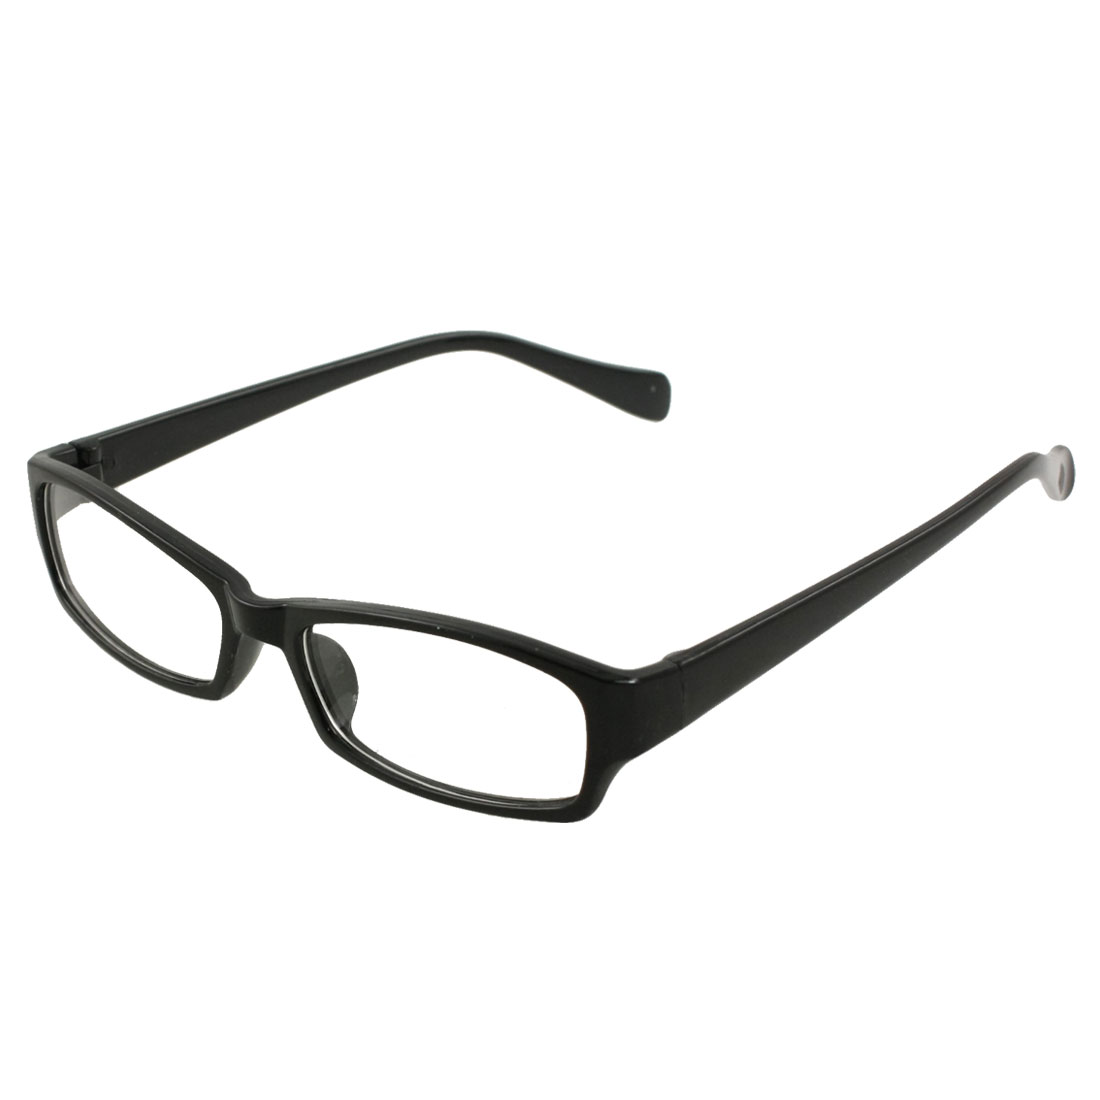 Unisex Single Bridge Rectangle Frame Clear Lens Eyewear Glasses Spectacles Black